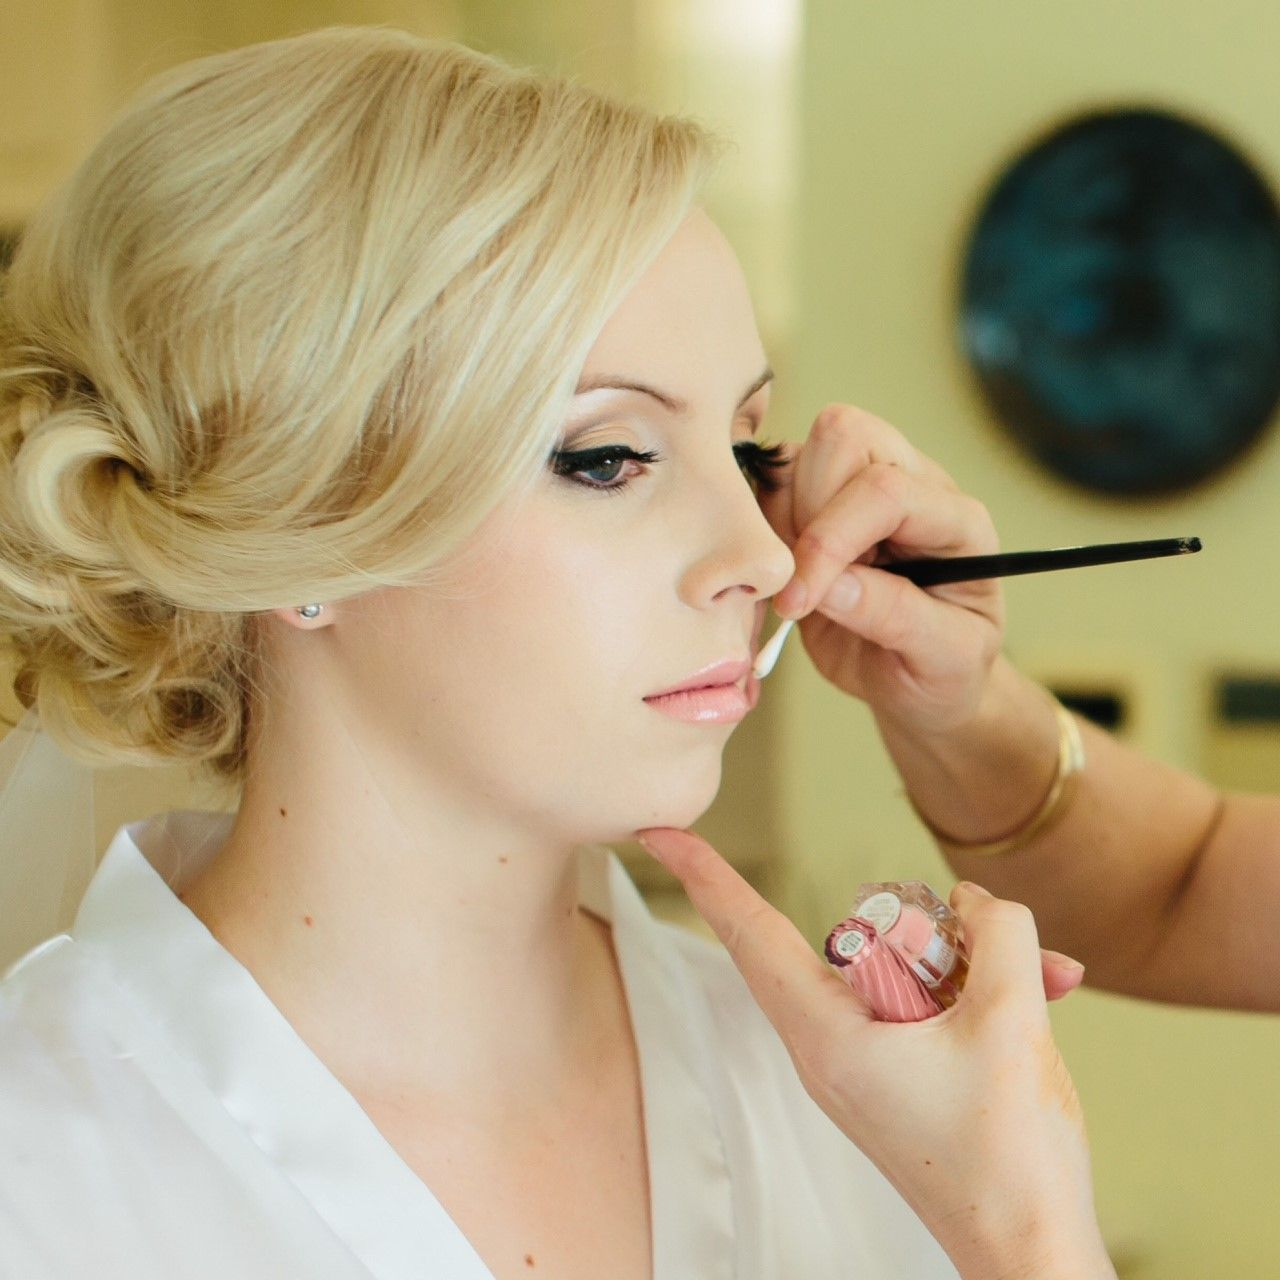 Bridal makeup artists and hair stylists, based in Perth